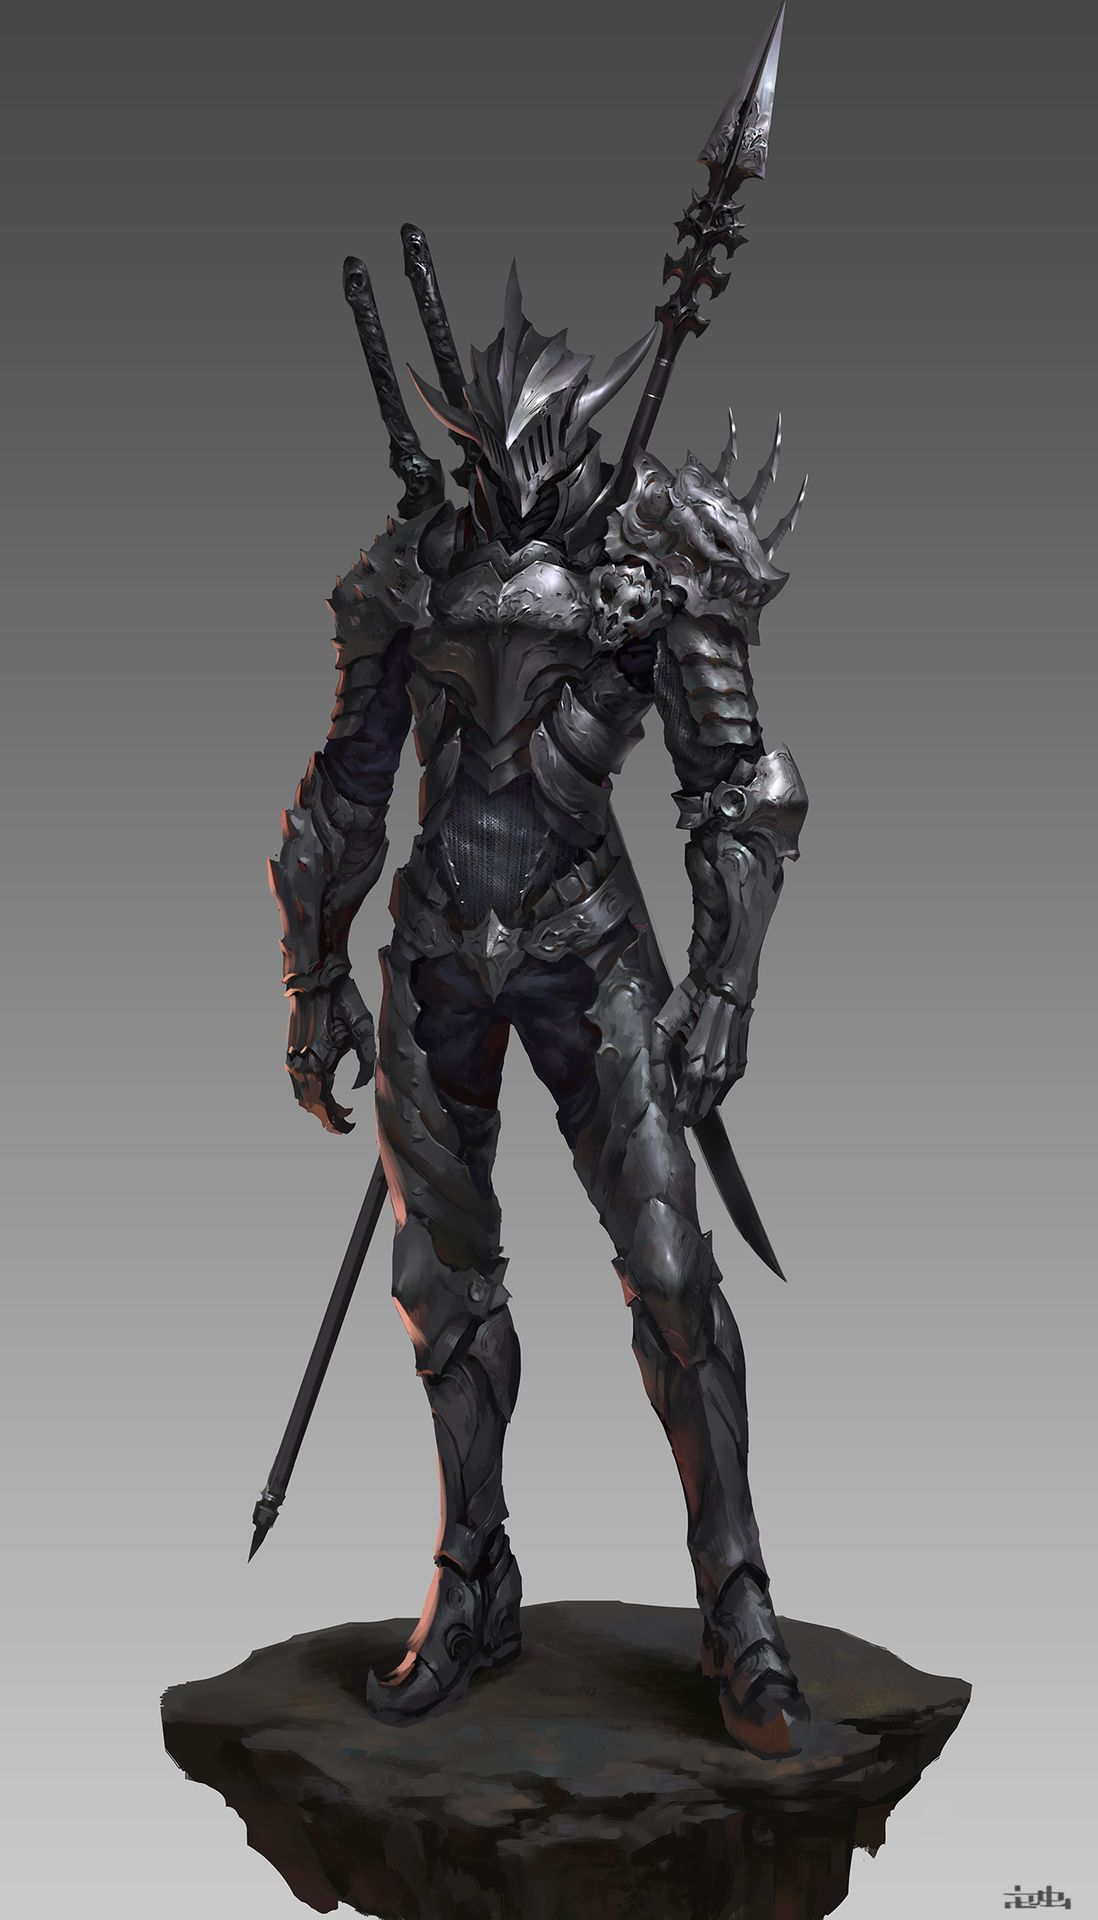 Cyberdelics Fantasy Armor Dragon Armor Fantasy Character Design In order to start the quest (which isn't logged into your quest journal) you need to go to the first edition in the market district and buy the book labeled the black dragon armor. fantasy armor dragon armor fantasy